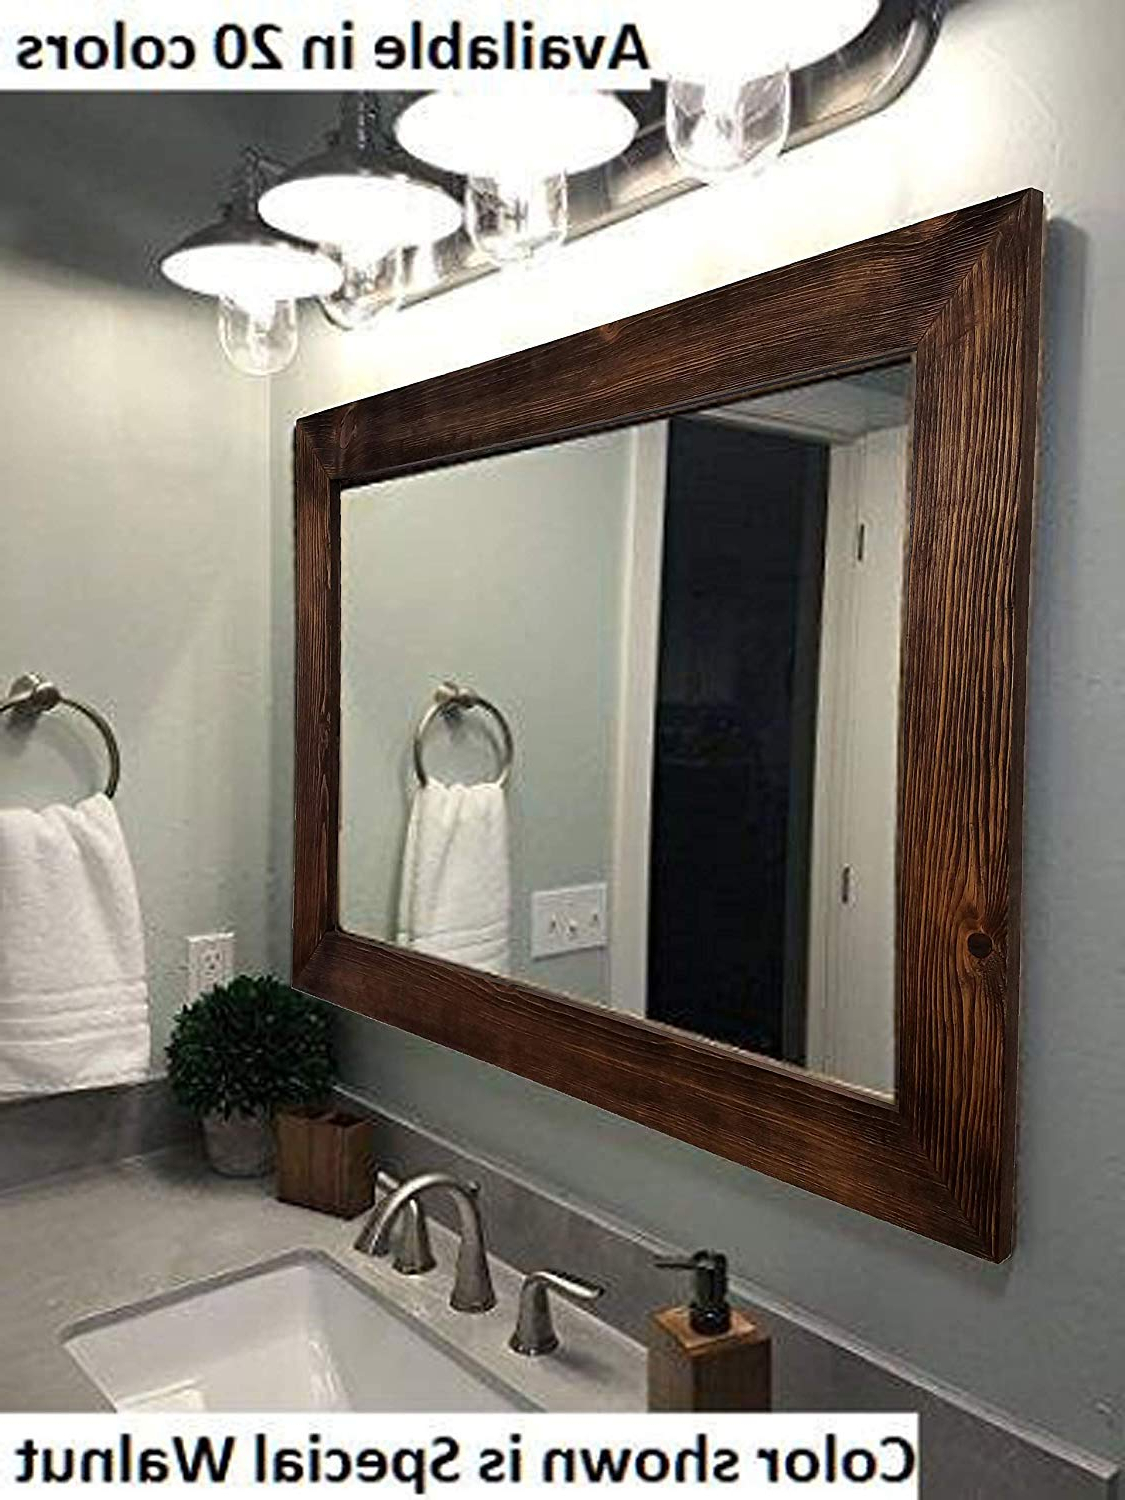 Shiplap Large Wood Framed Mirror Available In 4 Sizes And 20 Colors: Shown  In Special Walnut Stain – Large Wall Mirror – Rustic Barnwood Style – Throughout Fashionable Large Wall Mirrors (View 19 of 20)